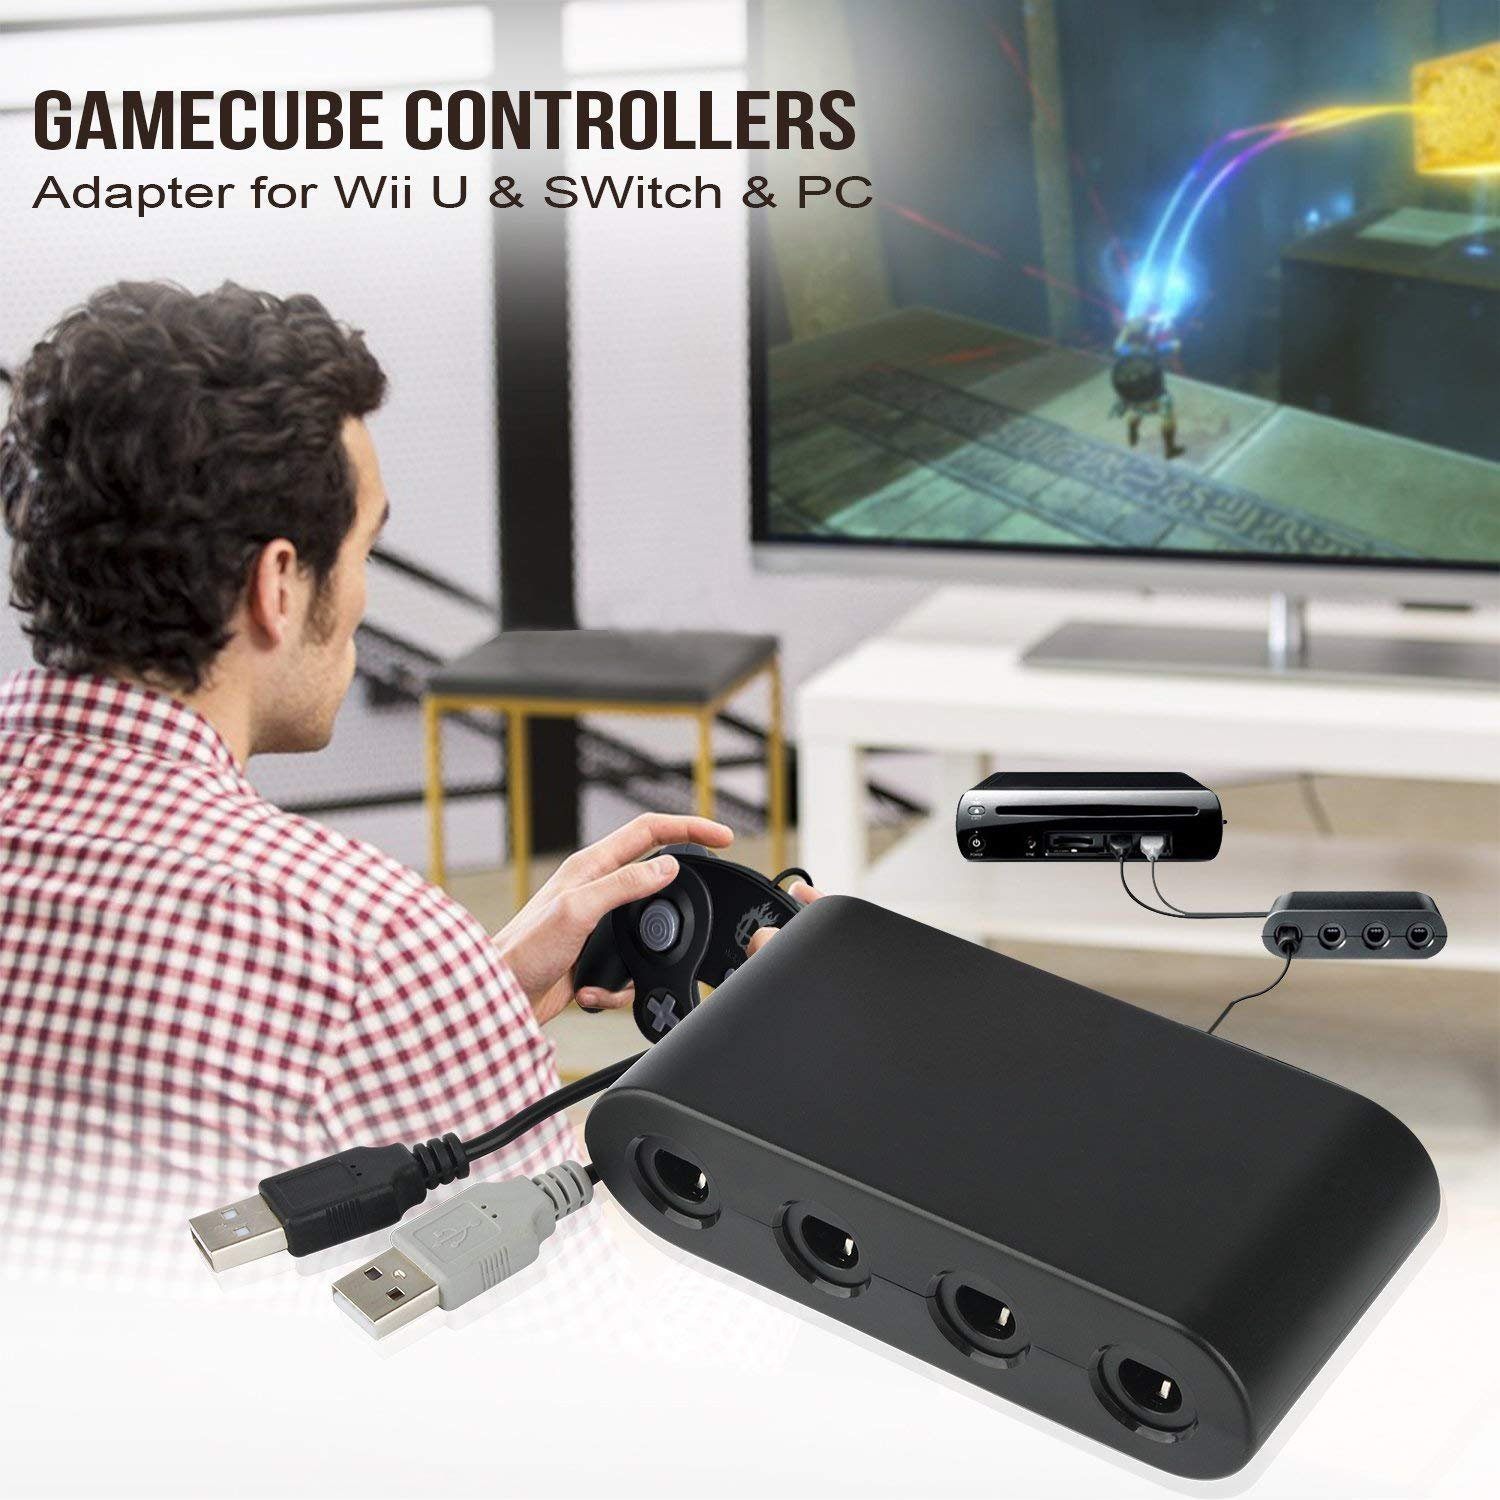 Gamecube Controller Adapter. Super Smash Bros Wii U Gamecube Adapter for Pc, Switch. No Driver Need and Easy to Use. 4 Port Black Gamecube Adapter(Improved Version) by Cloudream (Image #7)